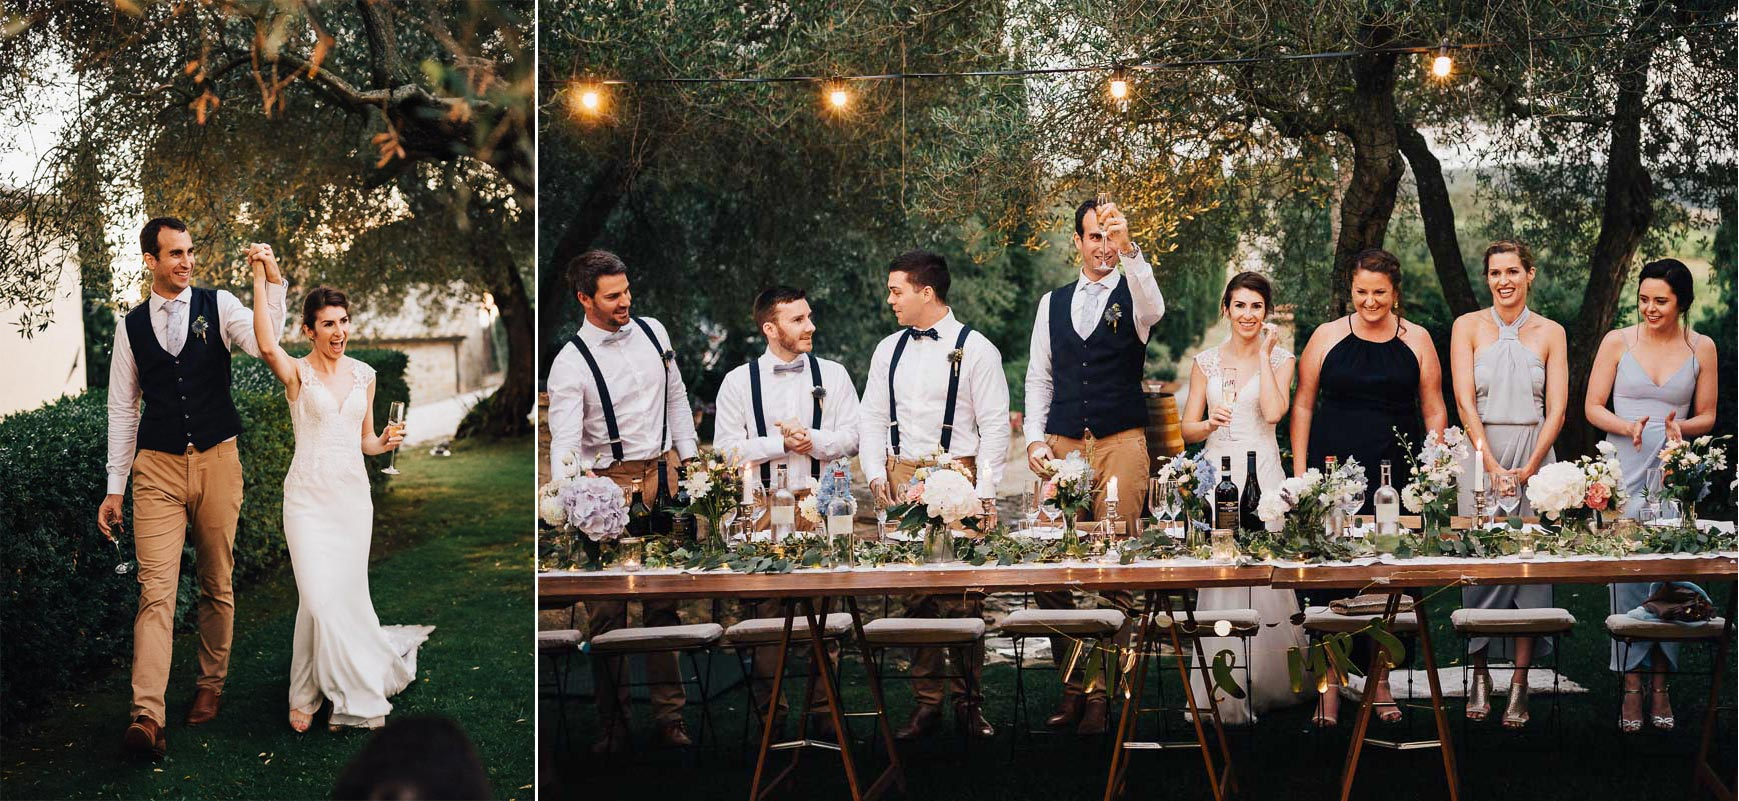 pienza-tuscany-wedding-photographer-129.jpg